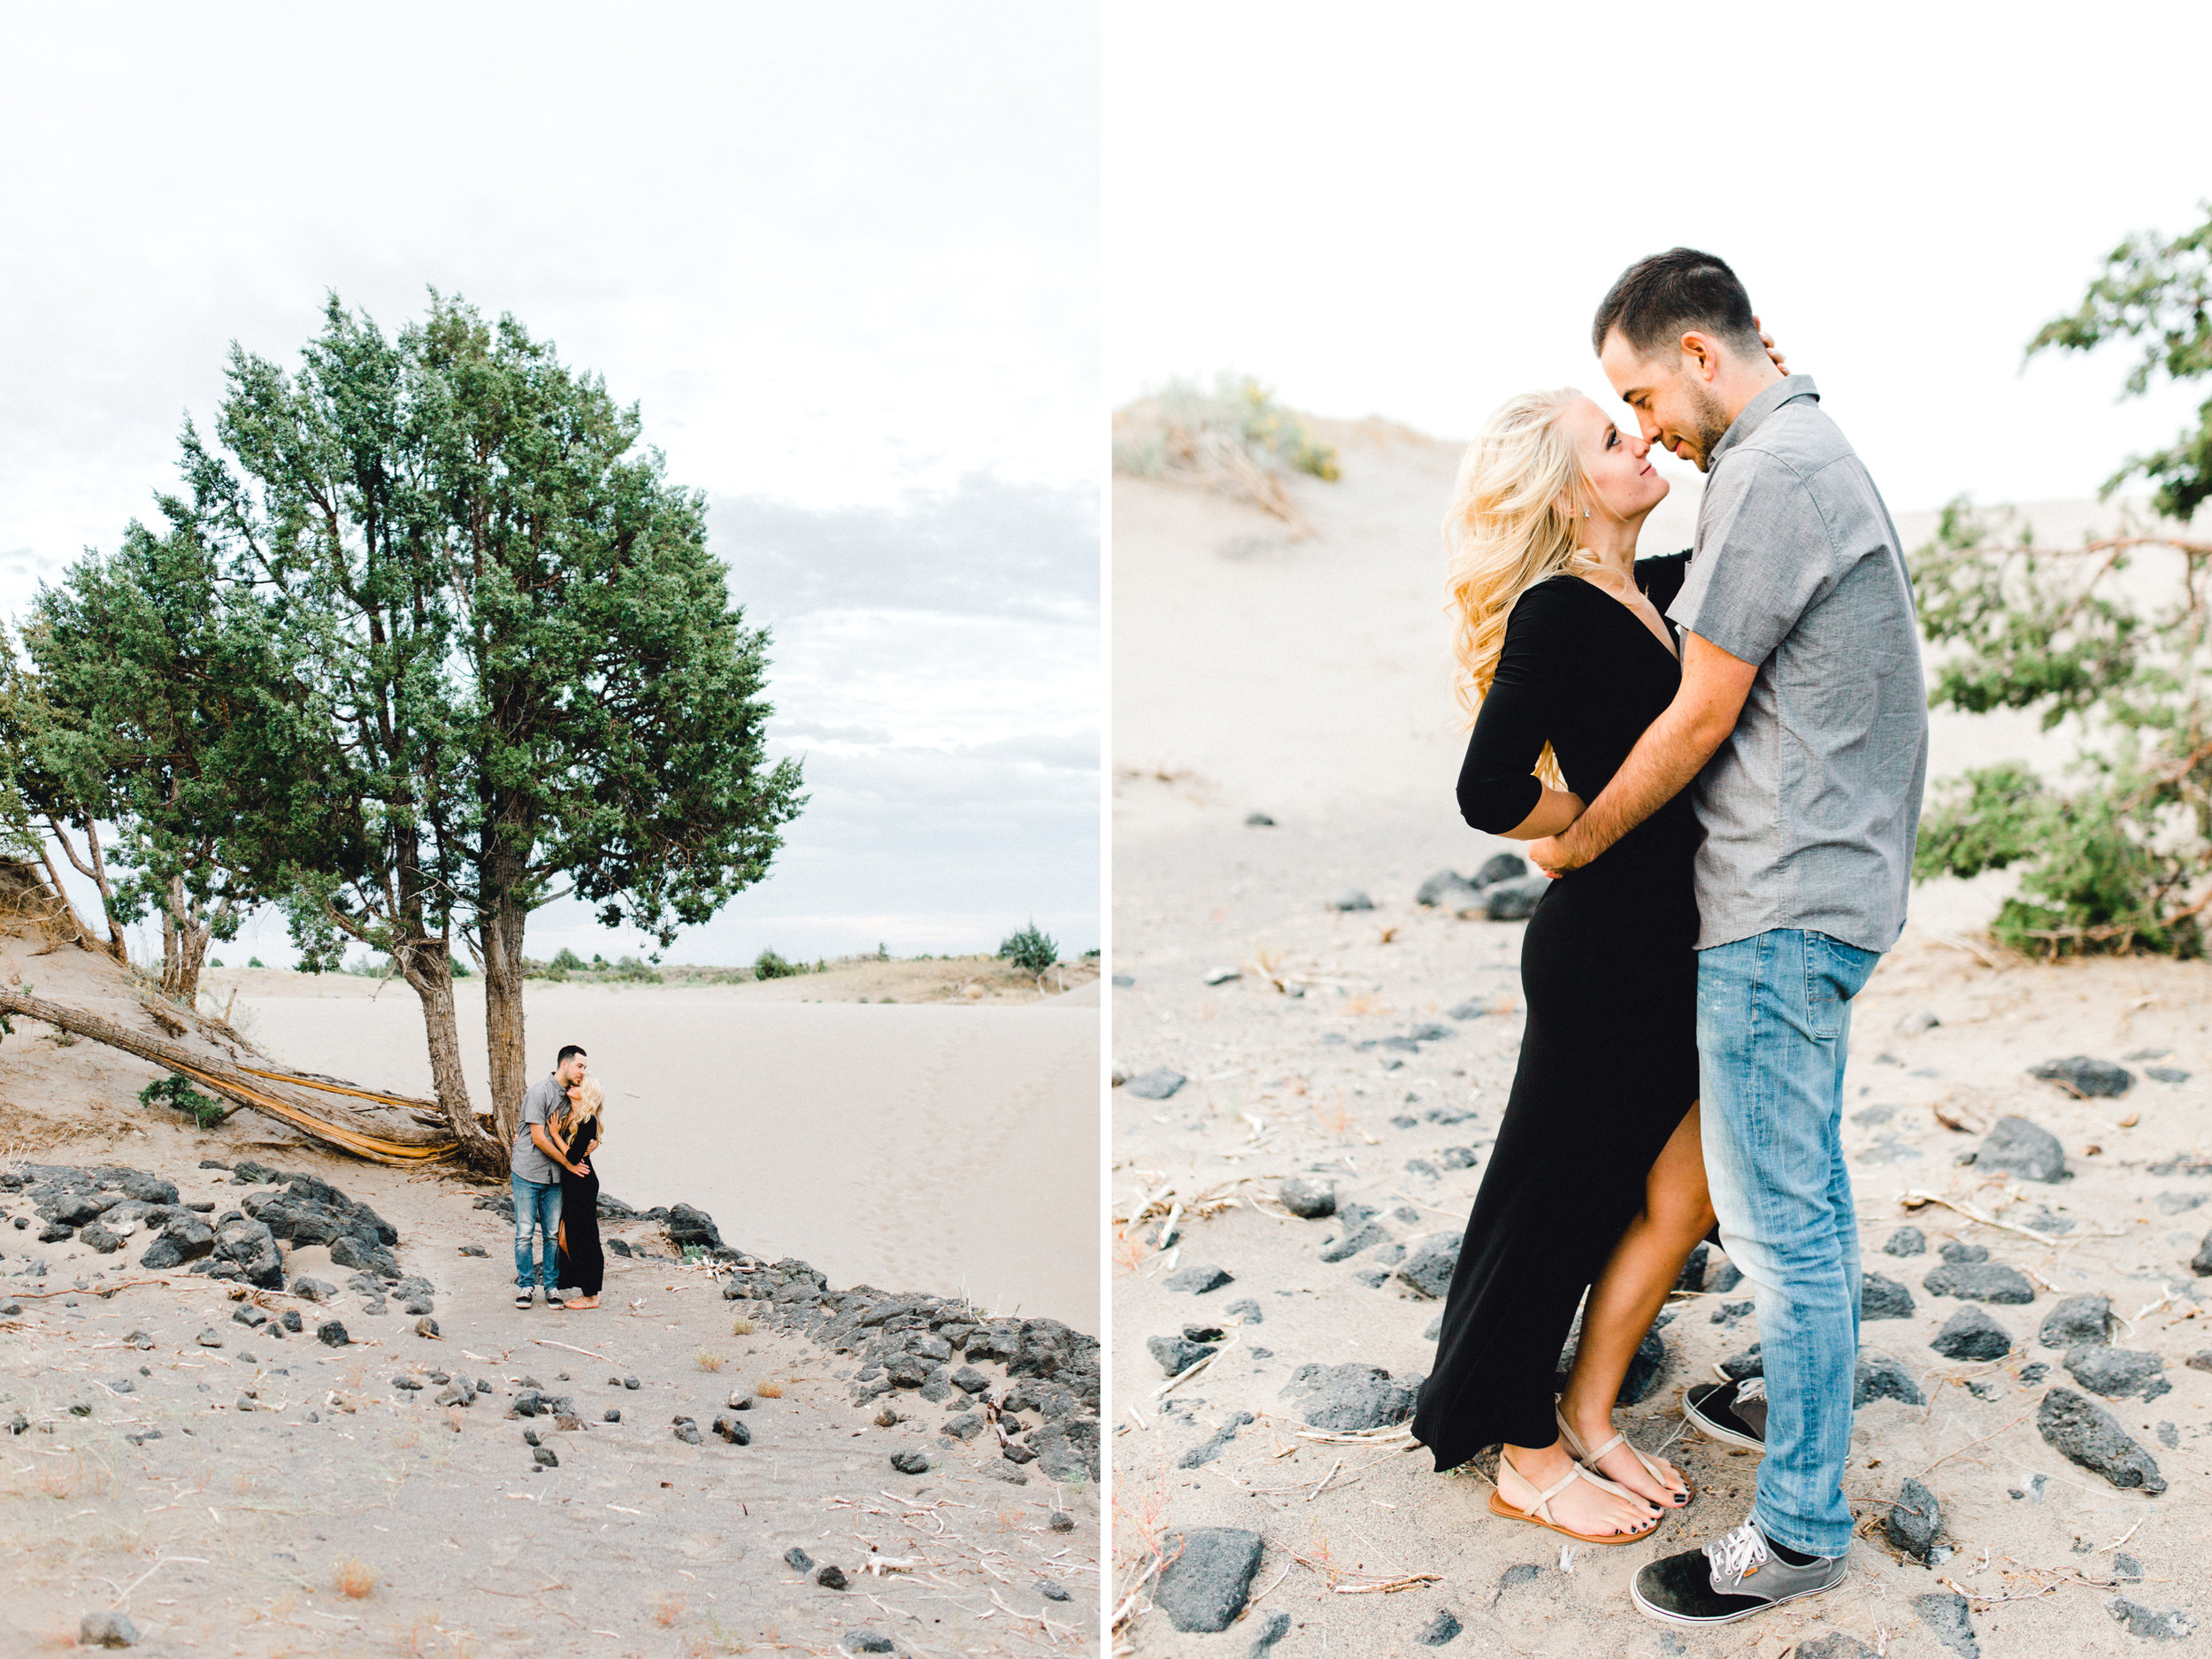 rexburg-idaho-sand-dunes-engagement-photographer-august-trevor6.jpg